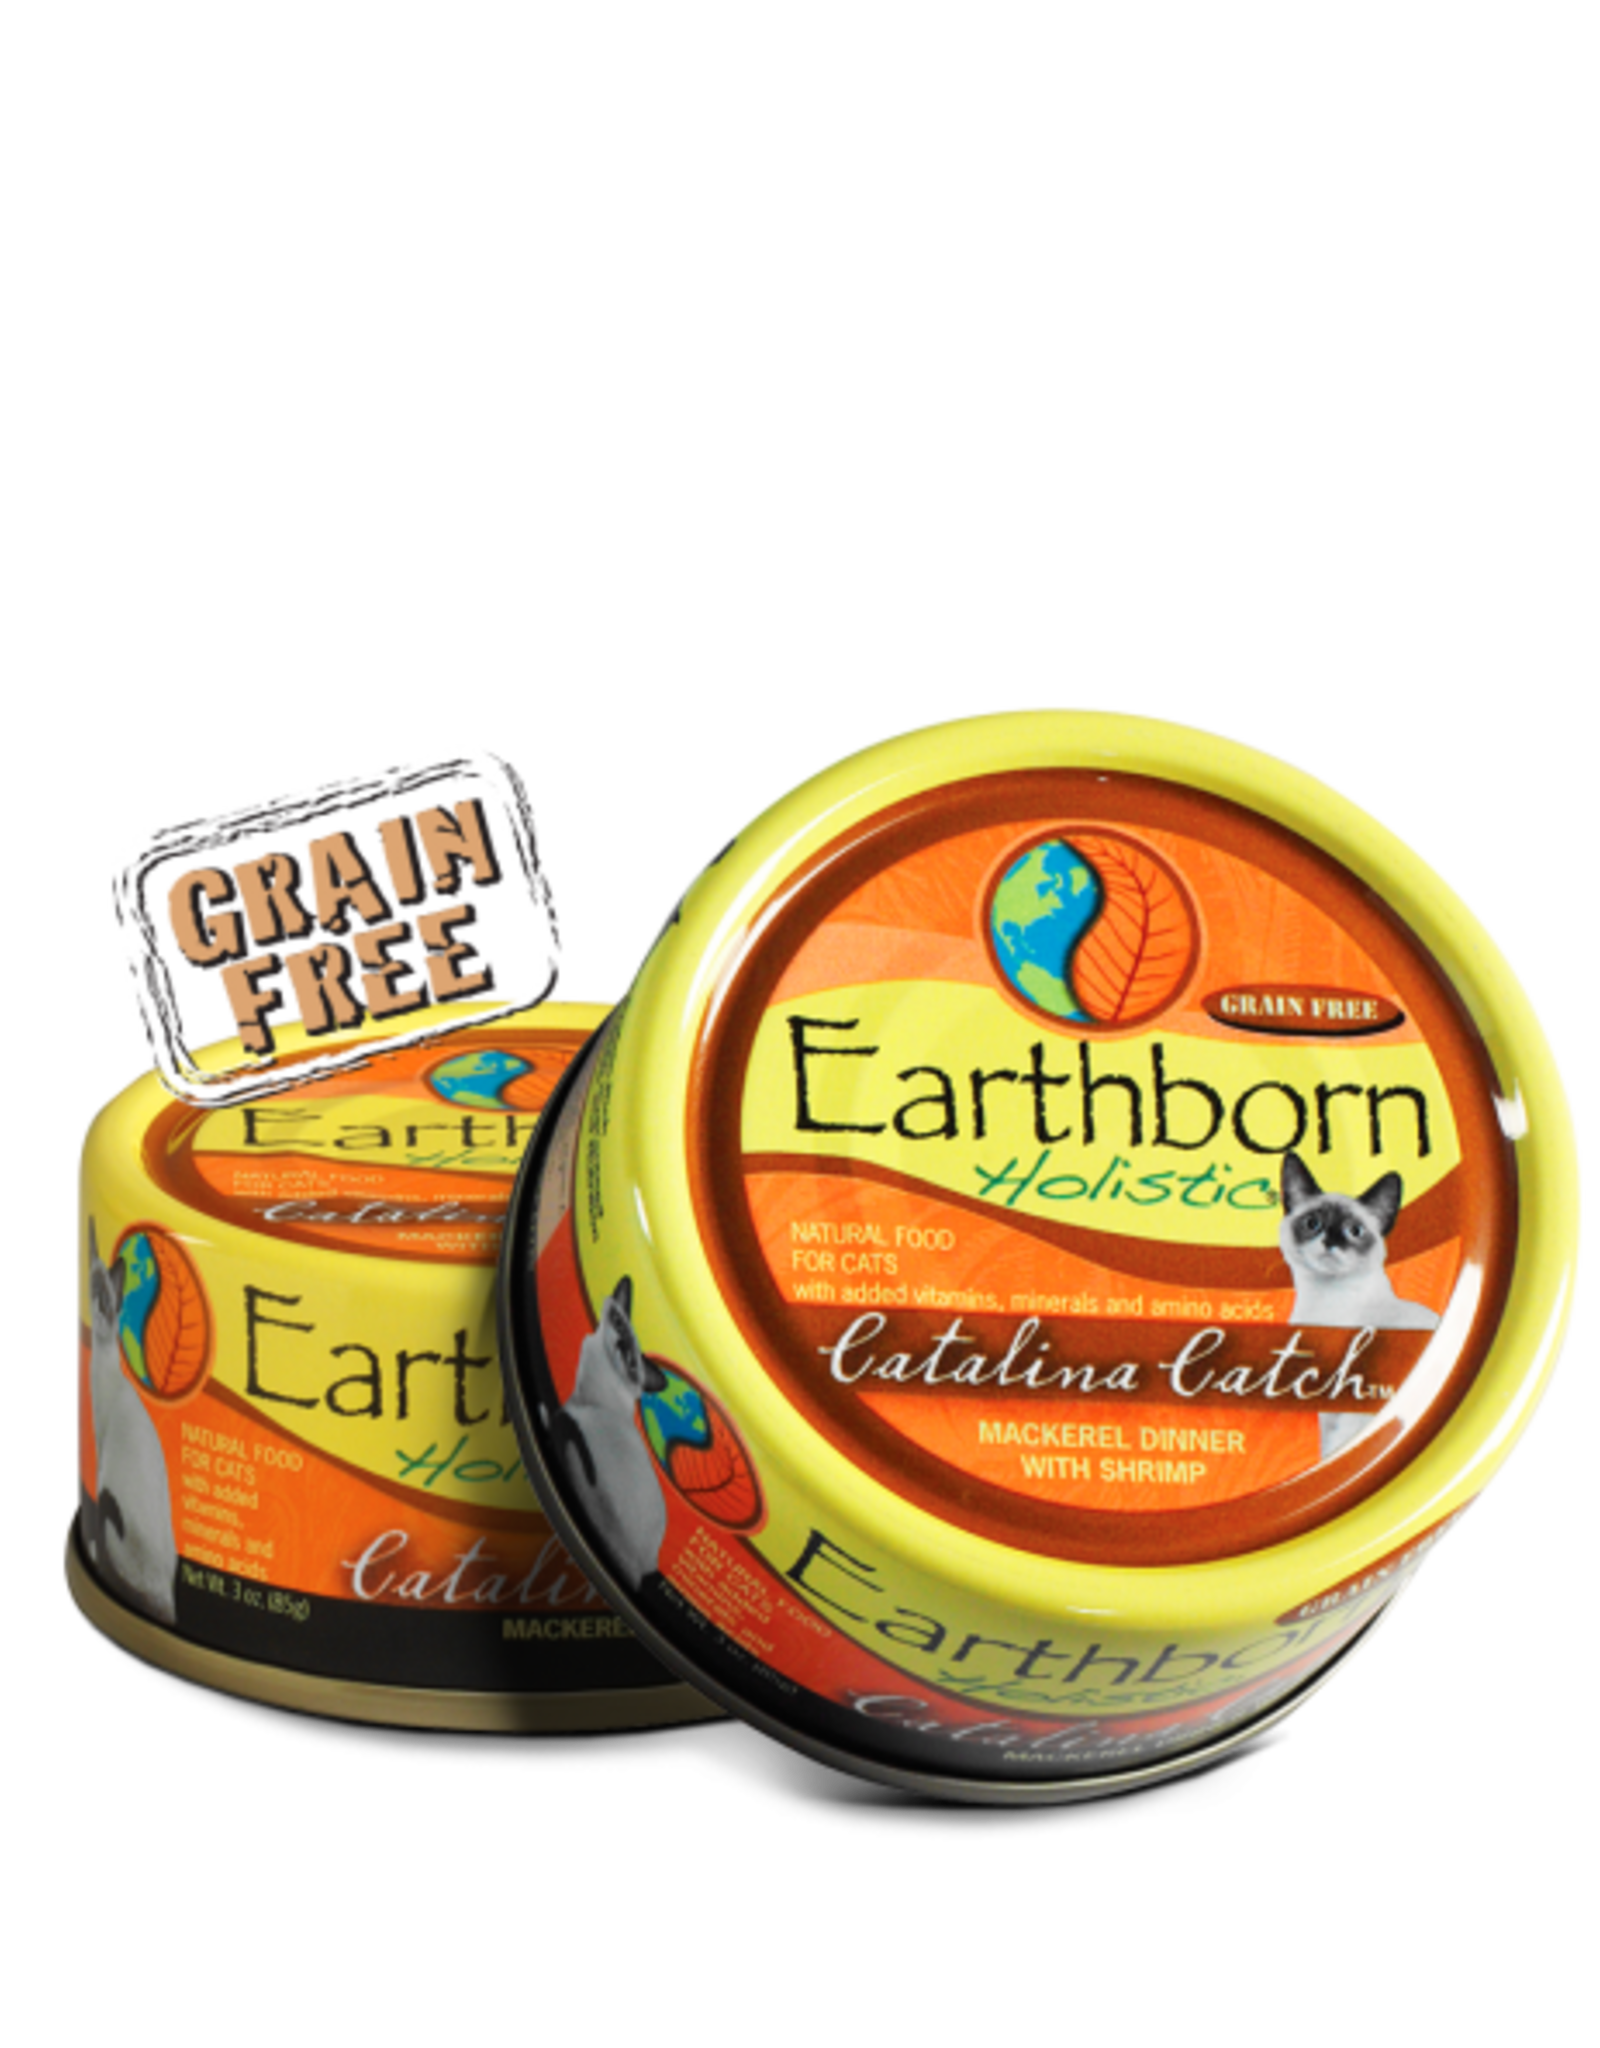 EARTHBORN EARTHBORN HOLISTIC CATALINA CATCH MACKEREL & SHRIMP 3OZ